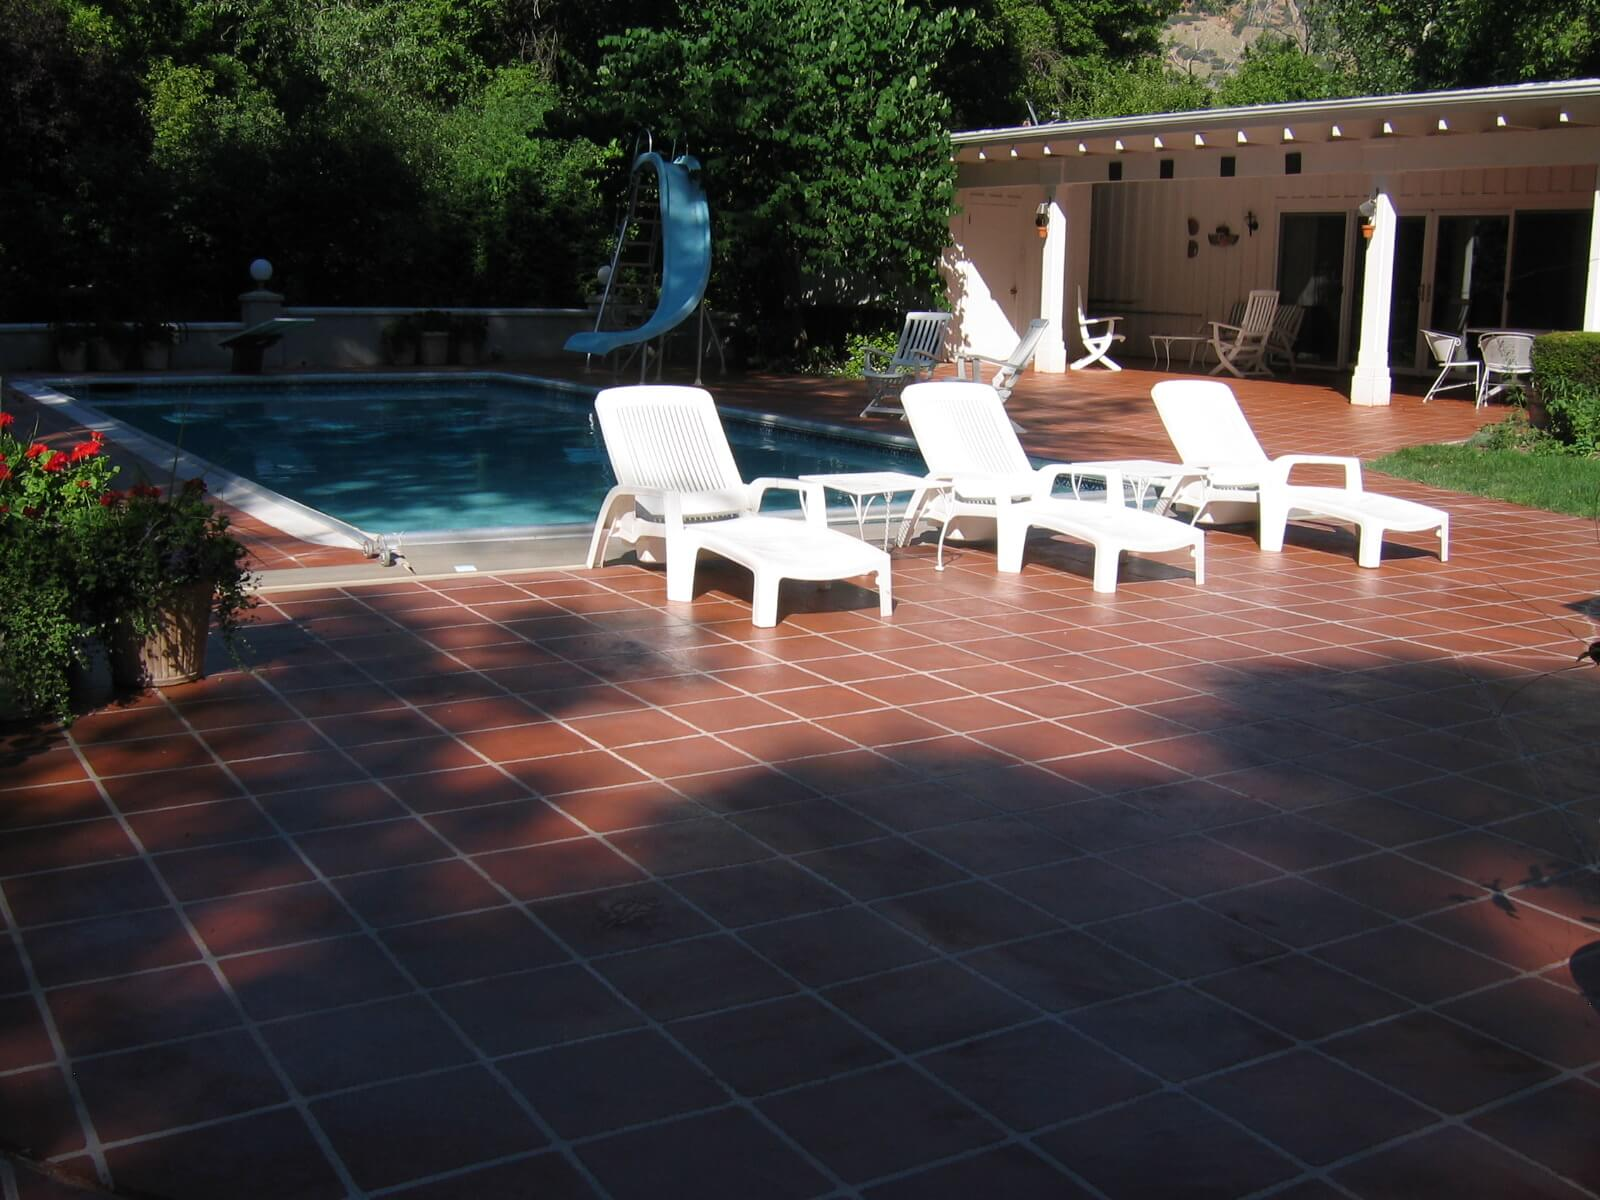 Concrete overlay tile pool deck concrete design systems for Pool design utah